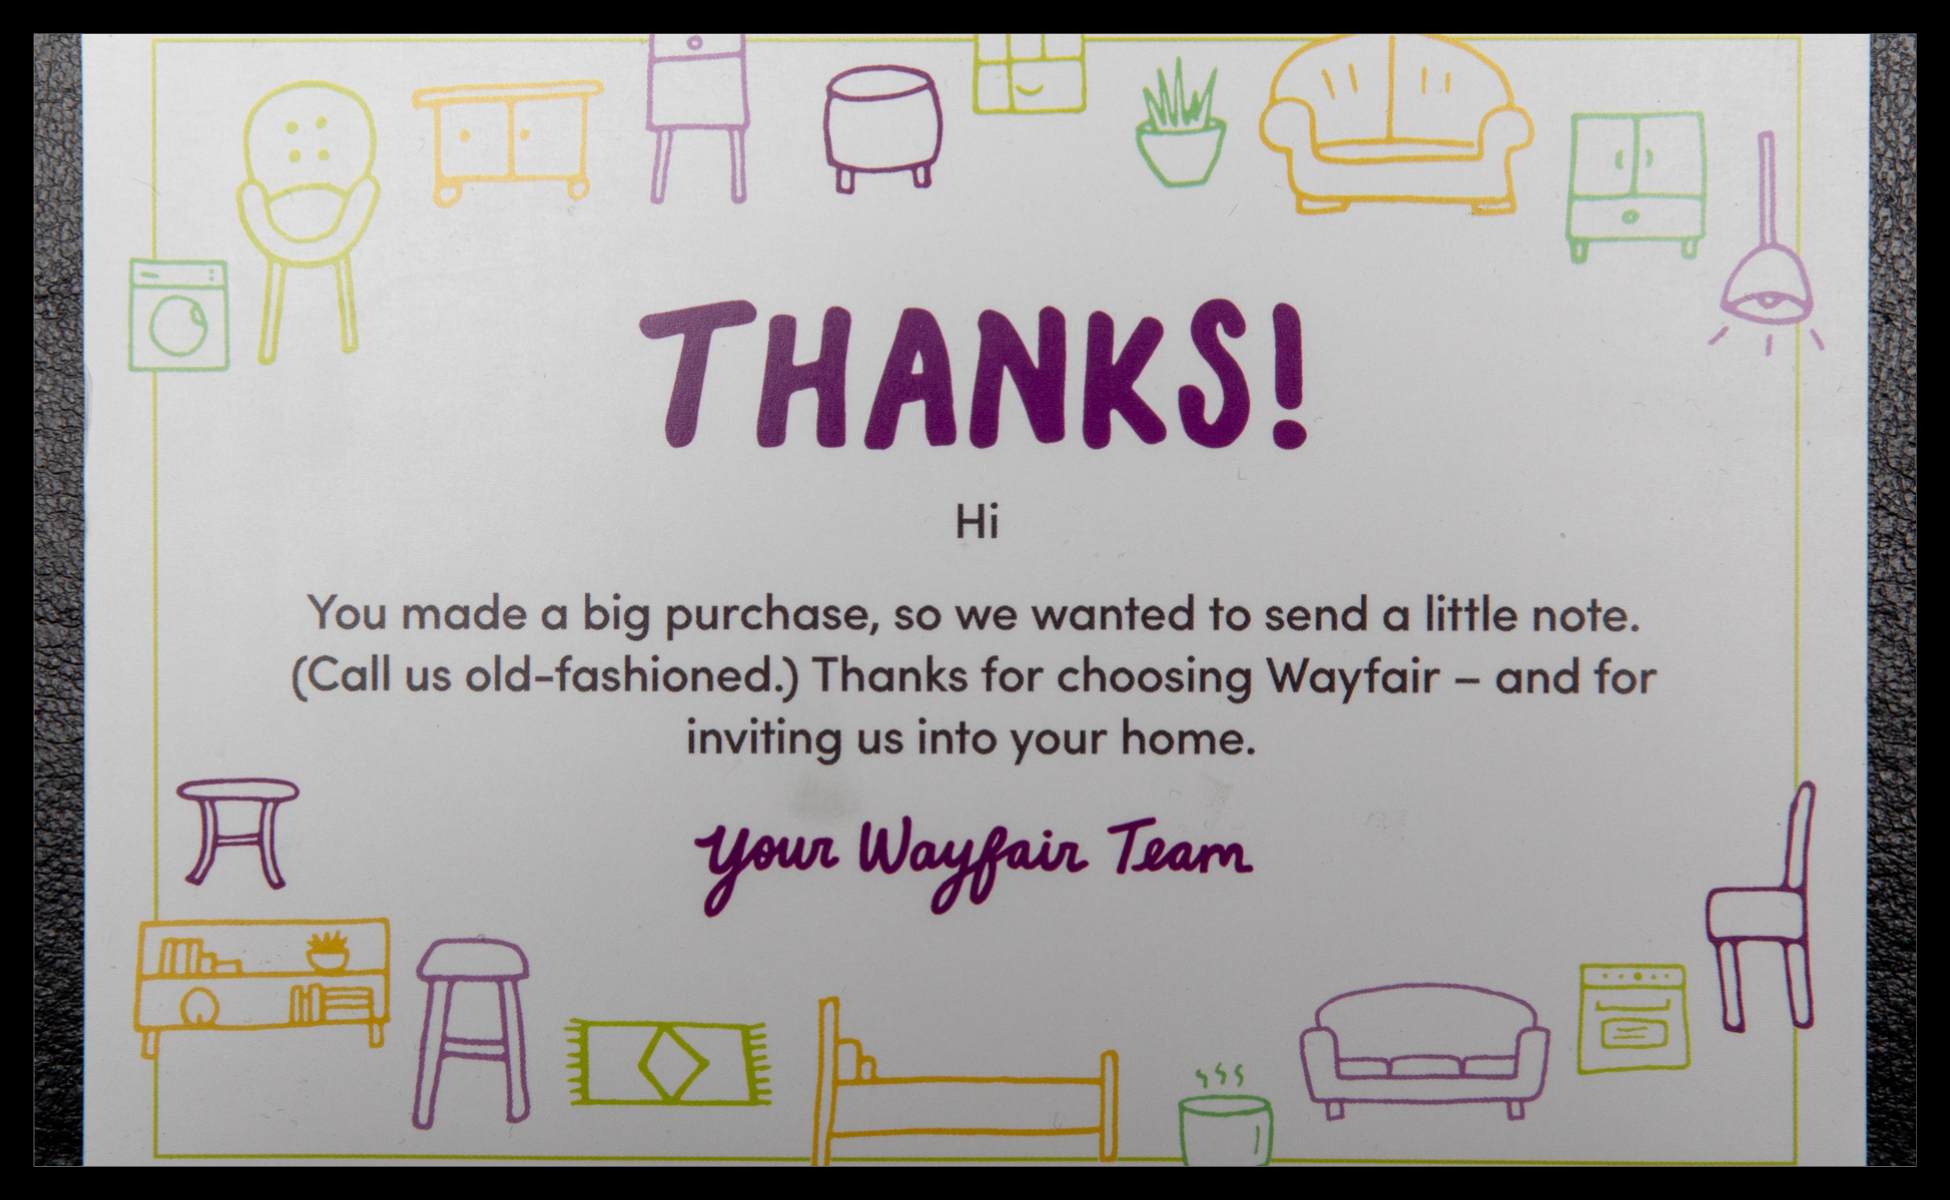 wayfair thanks.jpg